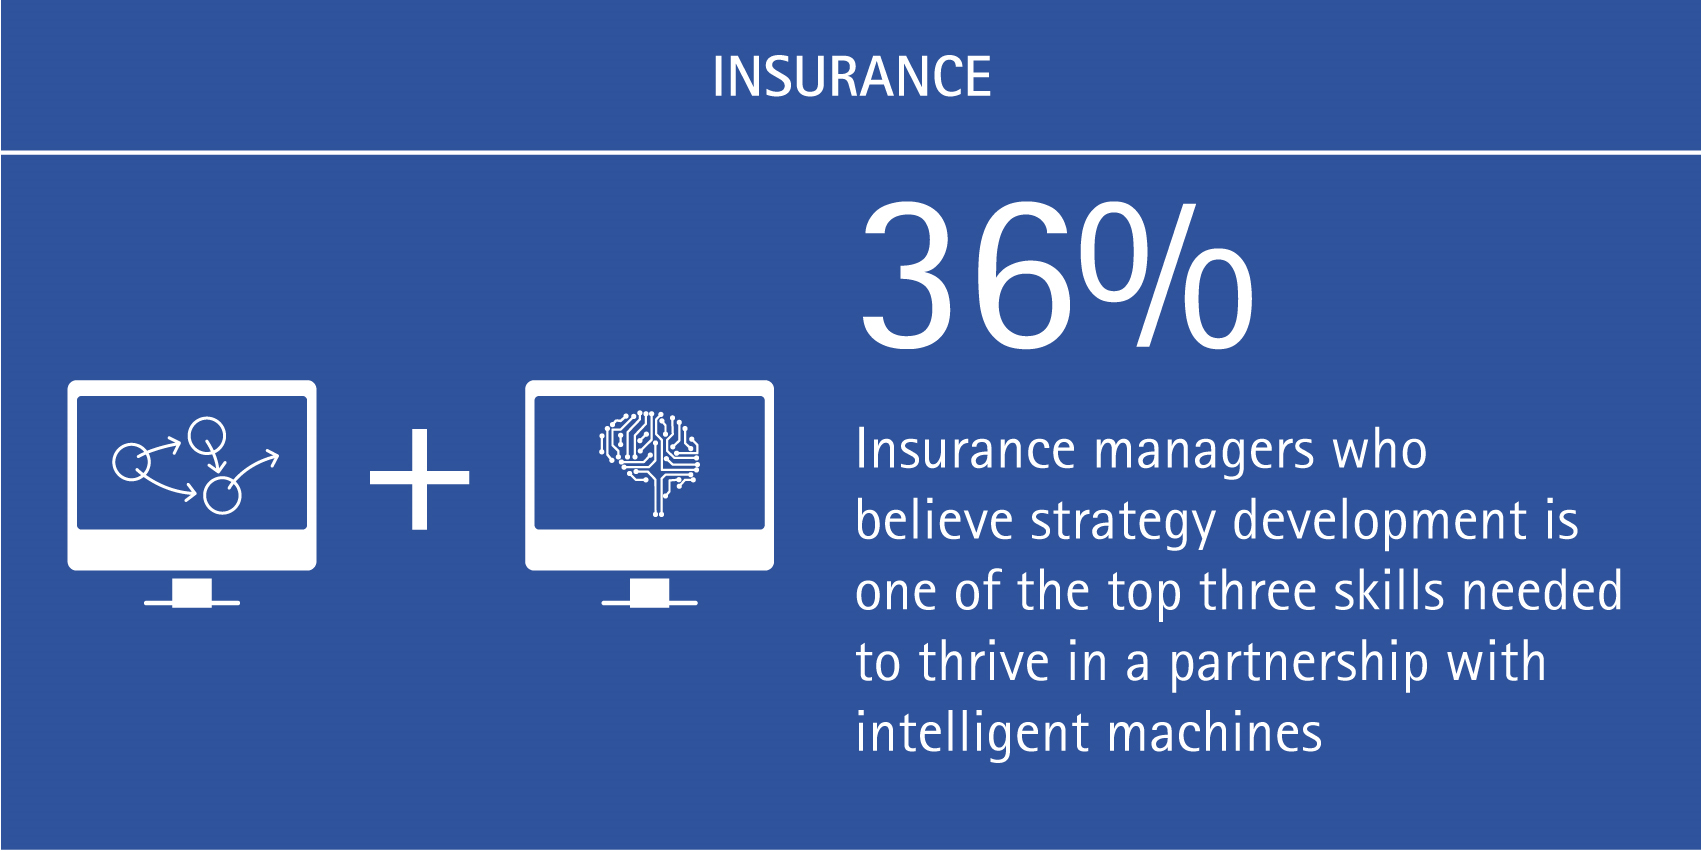 36% of insurance managers believe strategy development is one of the top three skills needed to thrive in a partnership with intelligent machines.